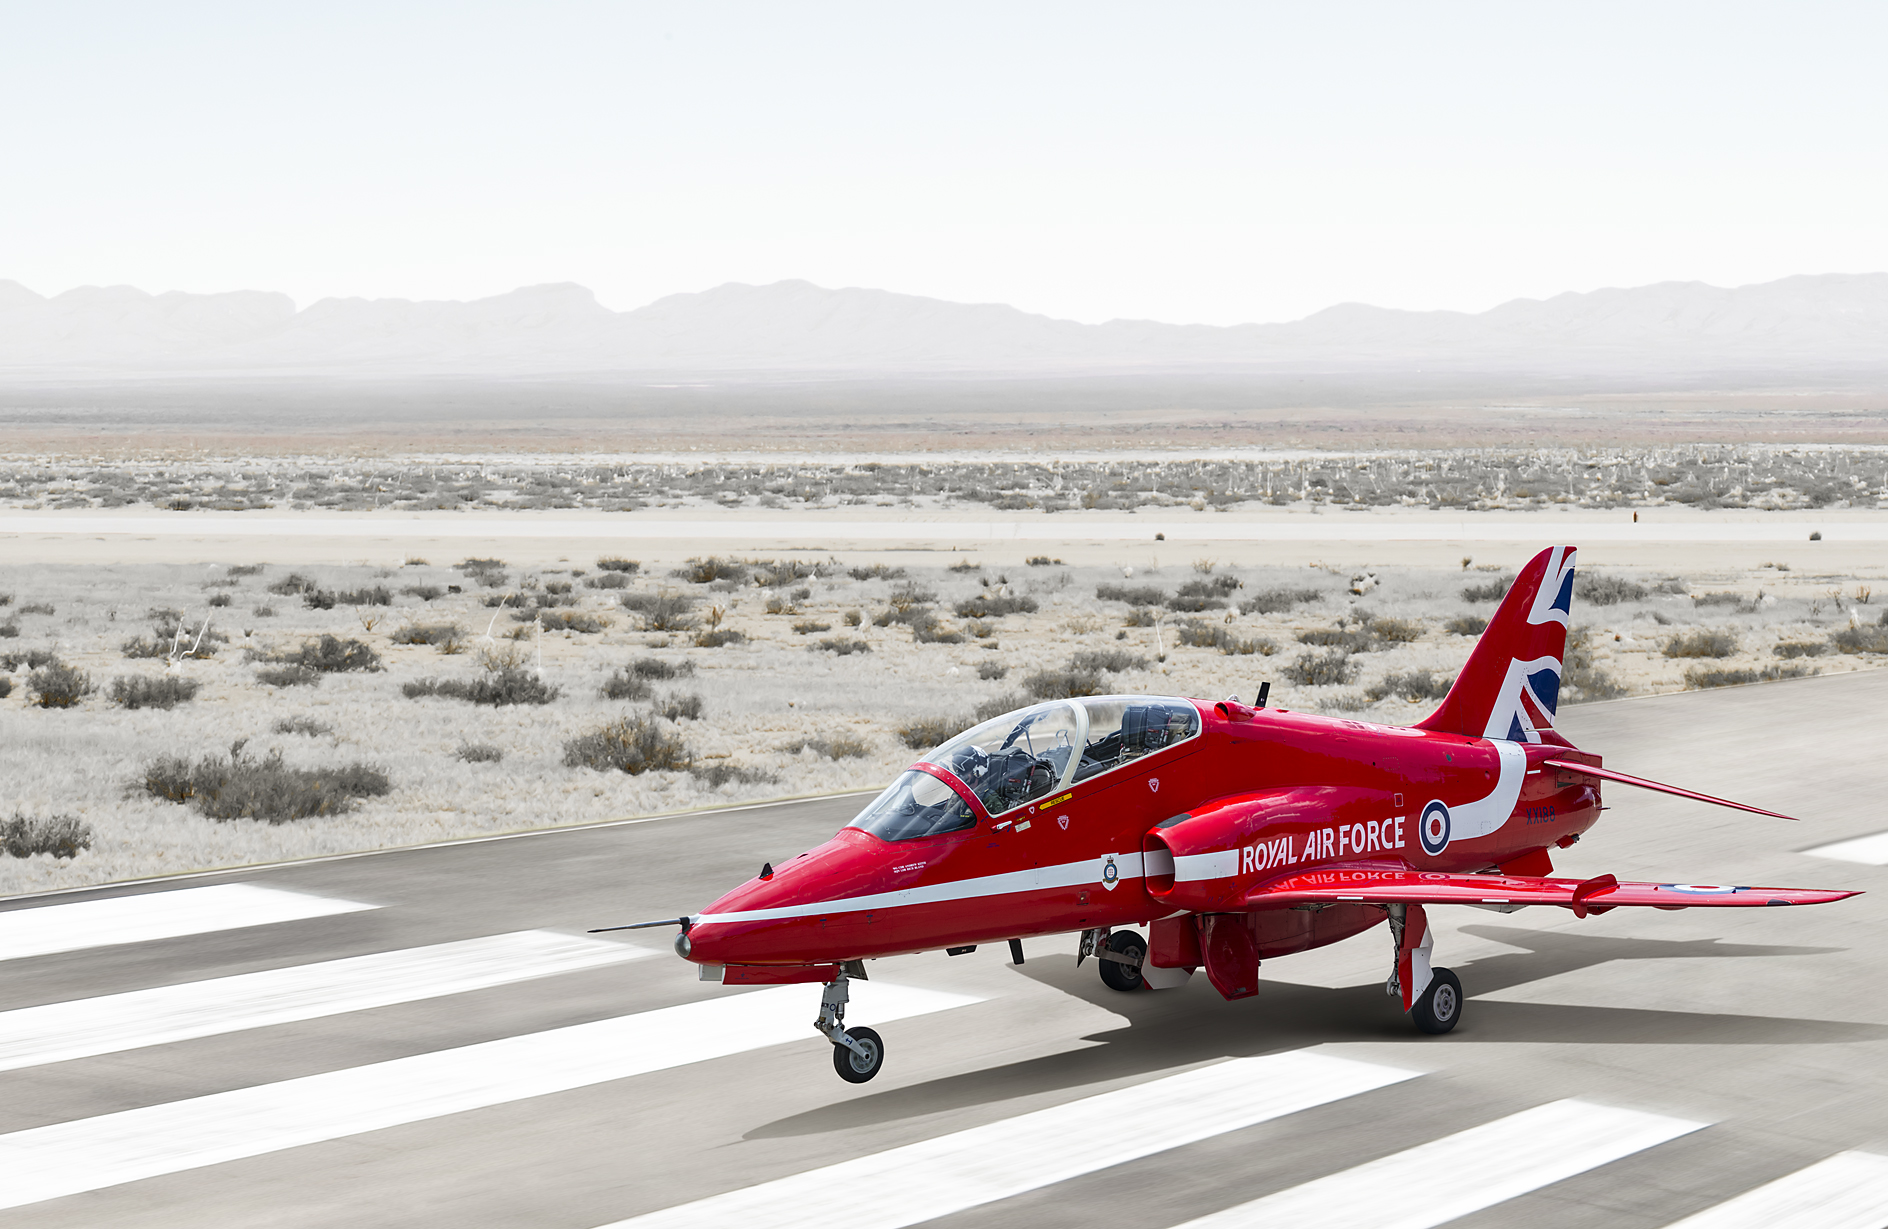 2D Red Arrows Jet Runway Photo Retouch Illustration